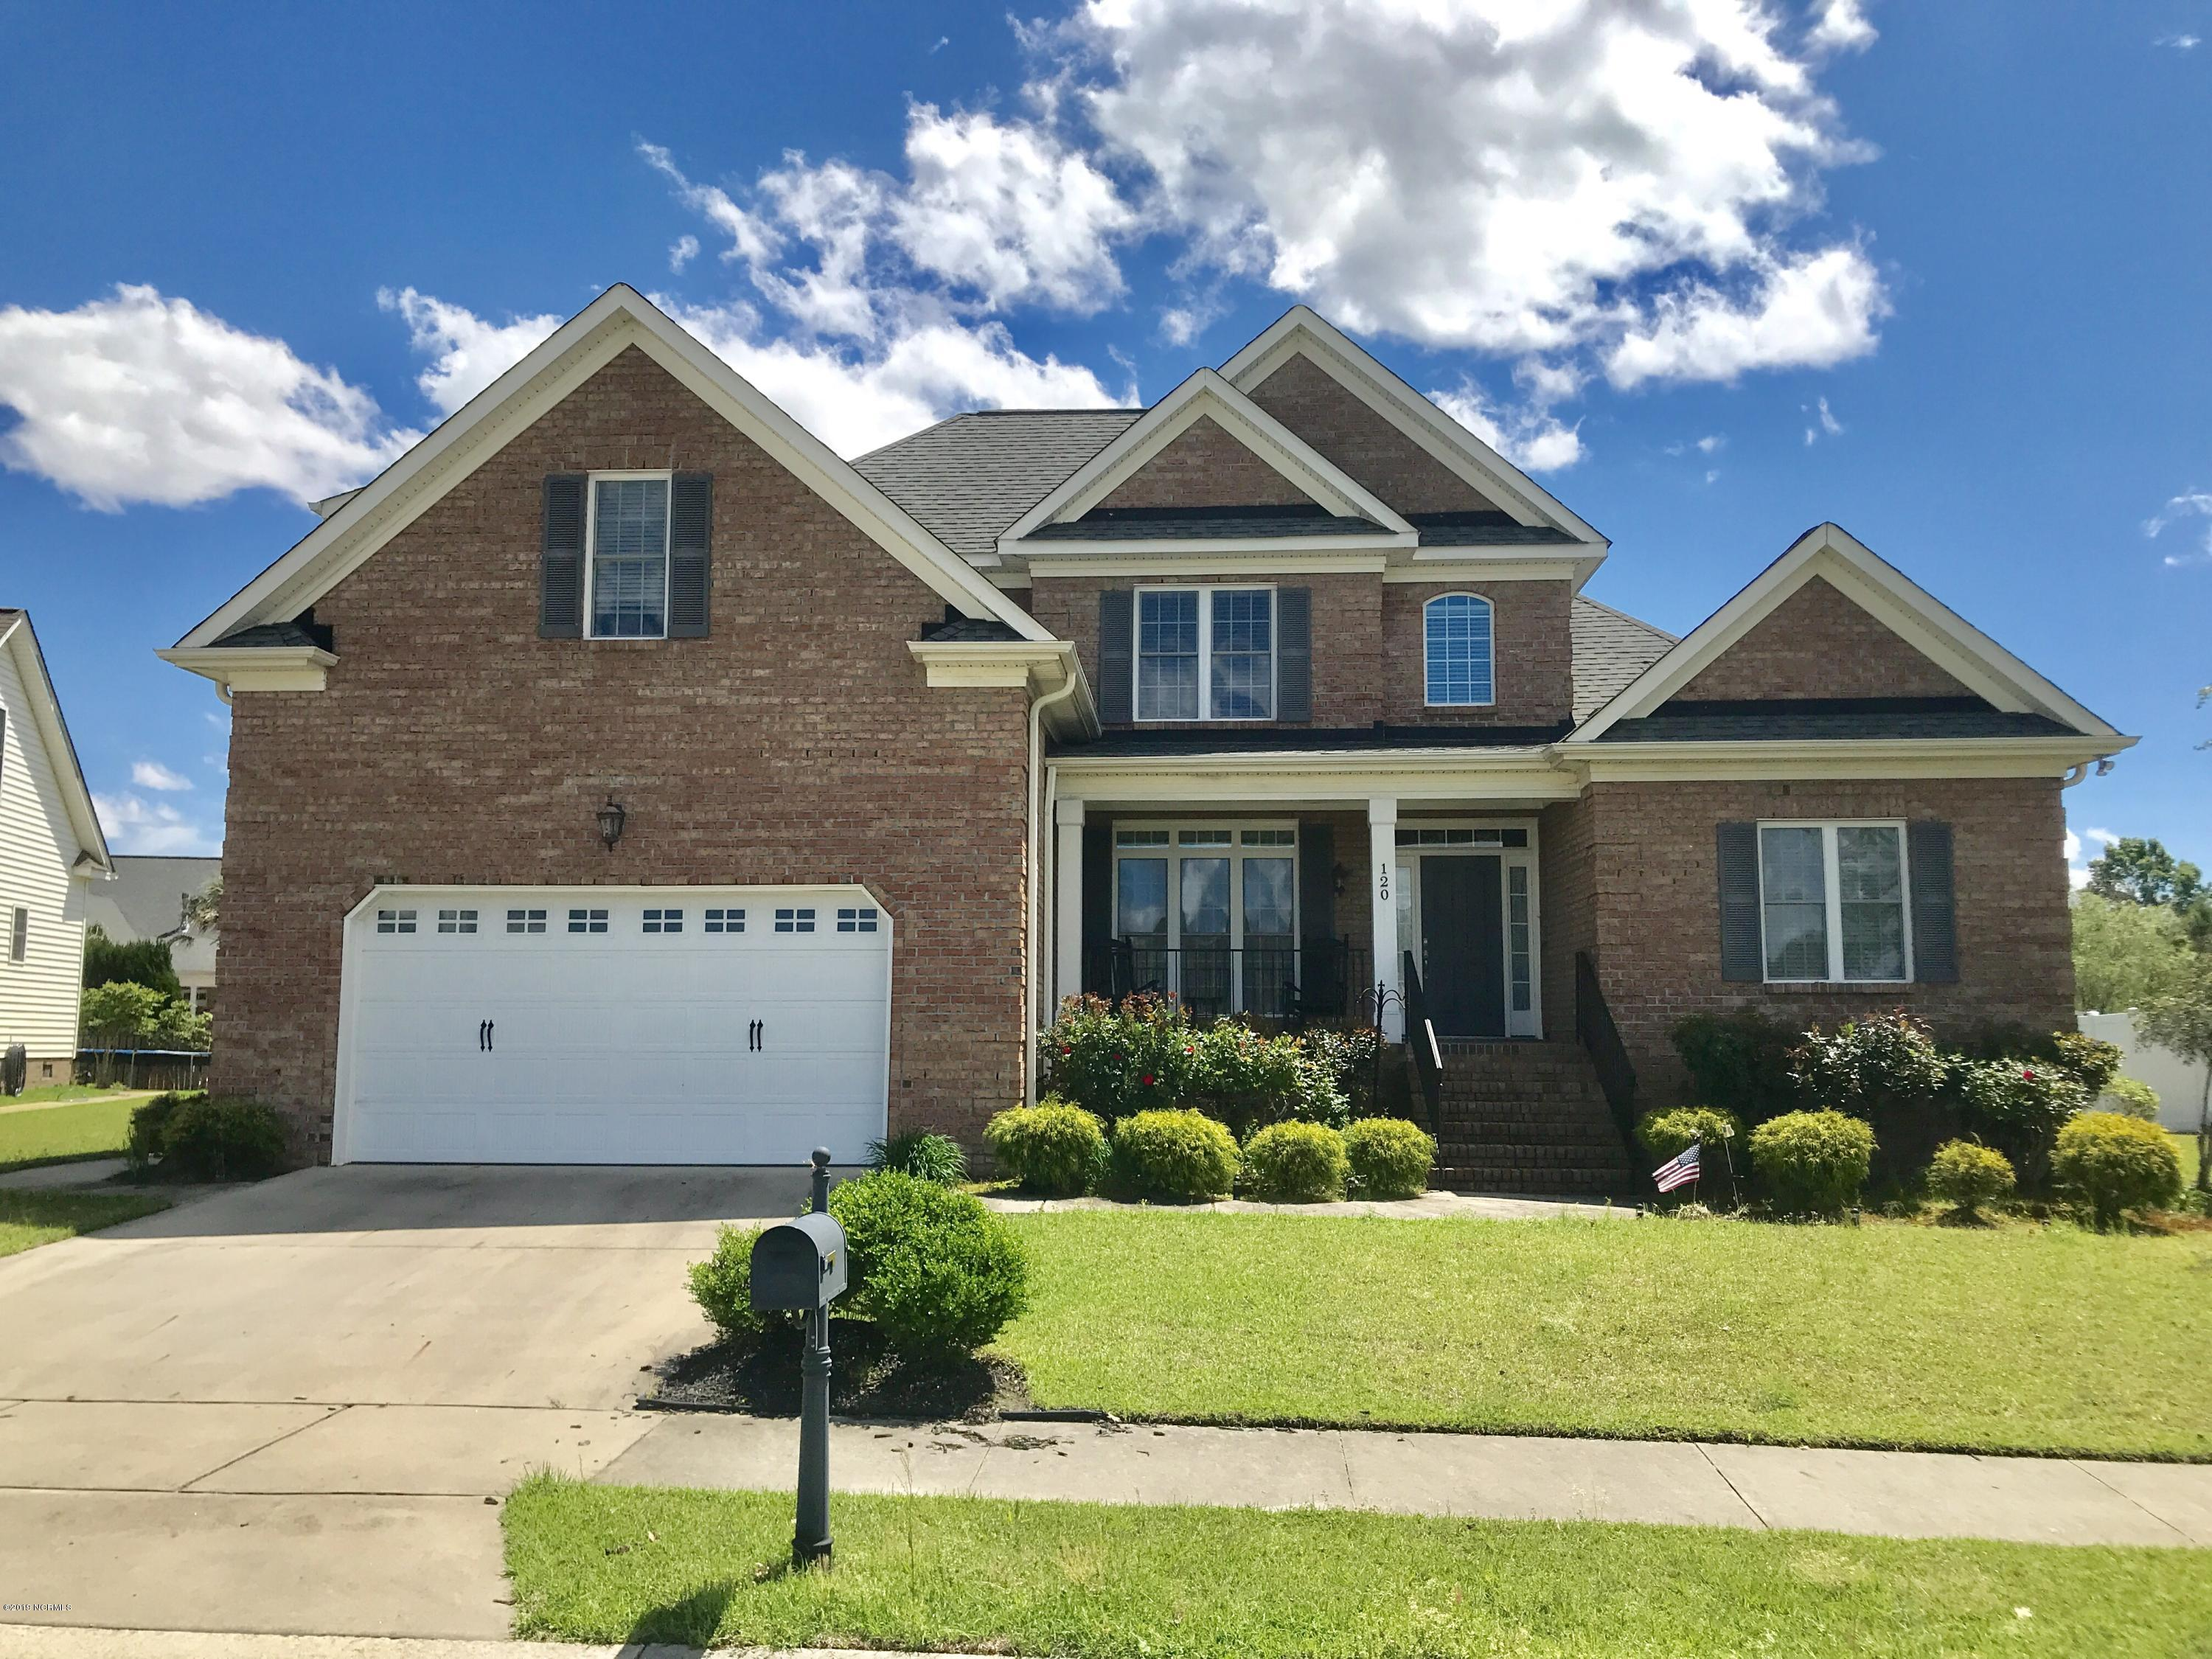 Property for sale at 120 Blackwater Drive, Winterville,  North Carolina 28590